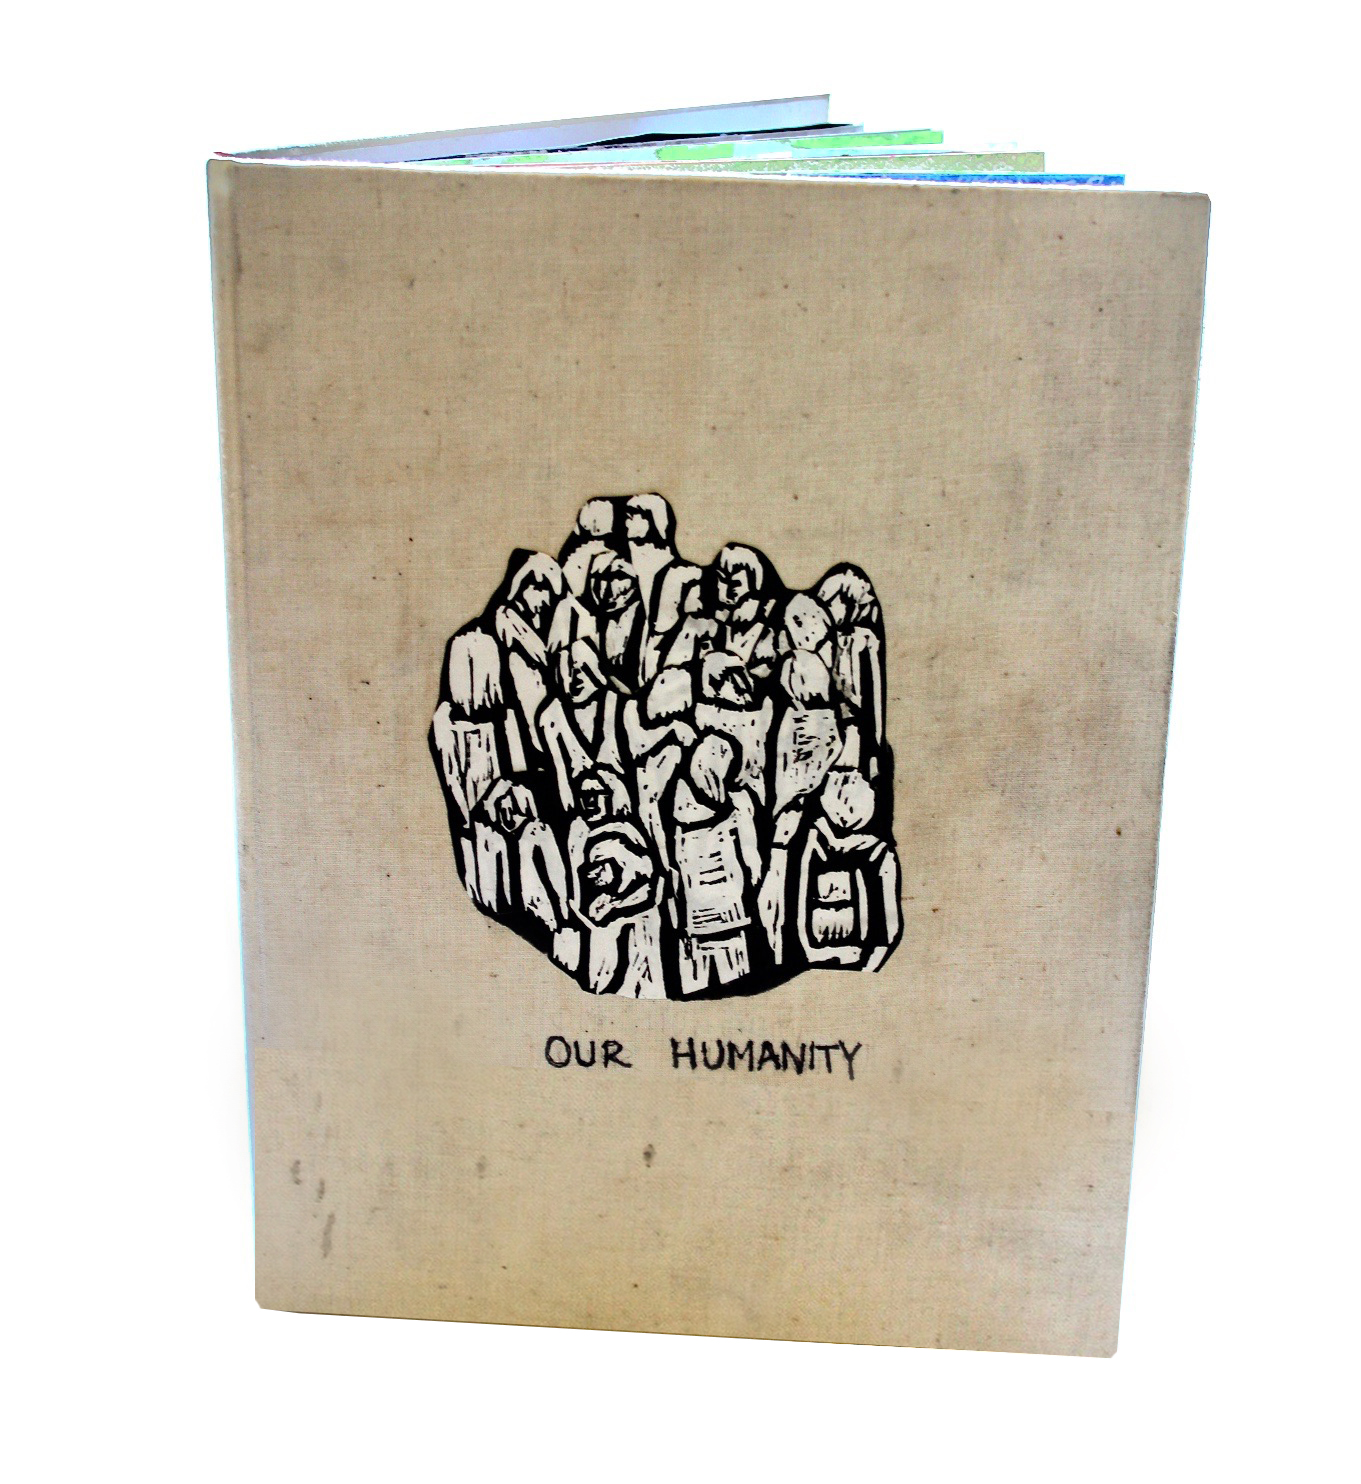 Our Humanity, ink, charcoal, encaustic, collage, graphite, on handmade book, 2015